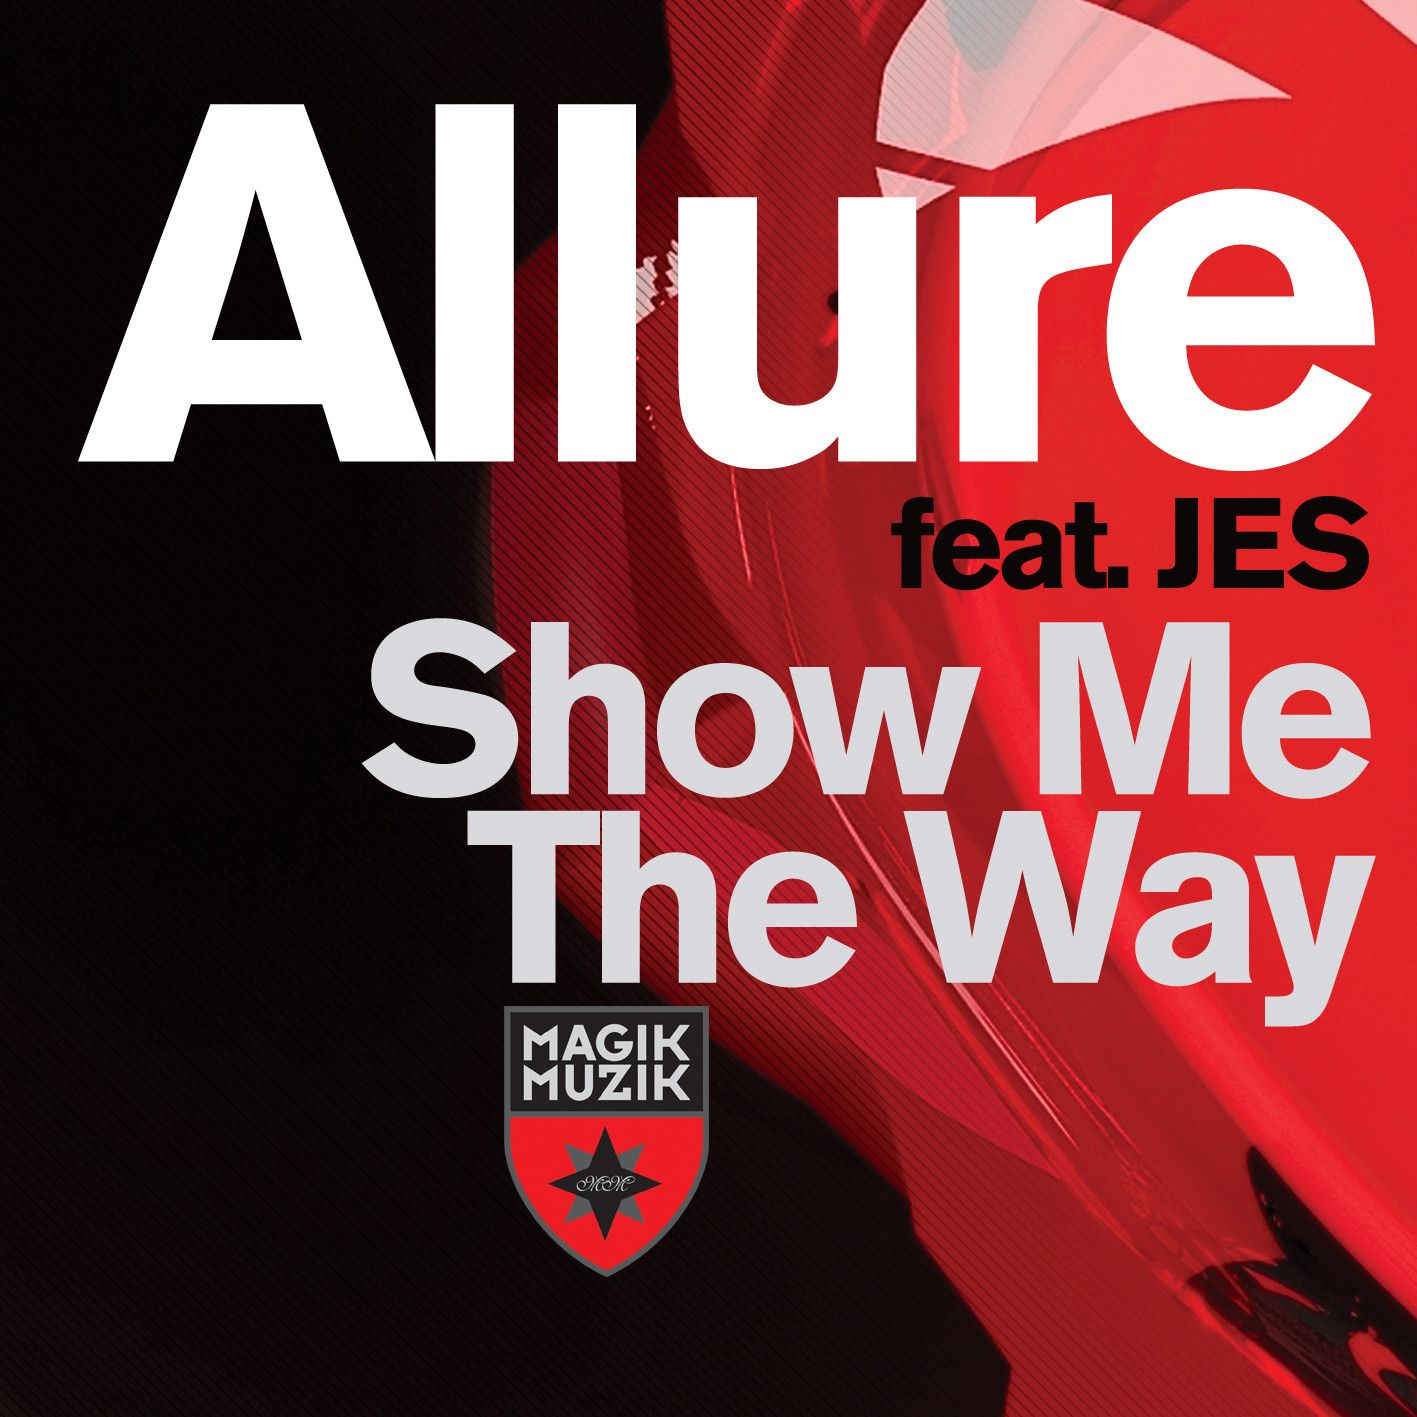 allure feat jes